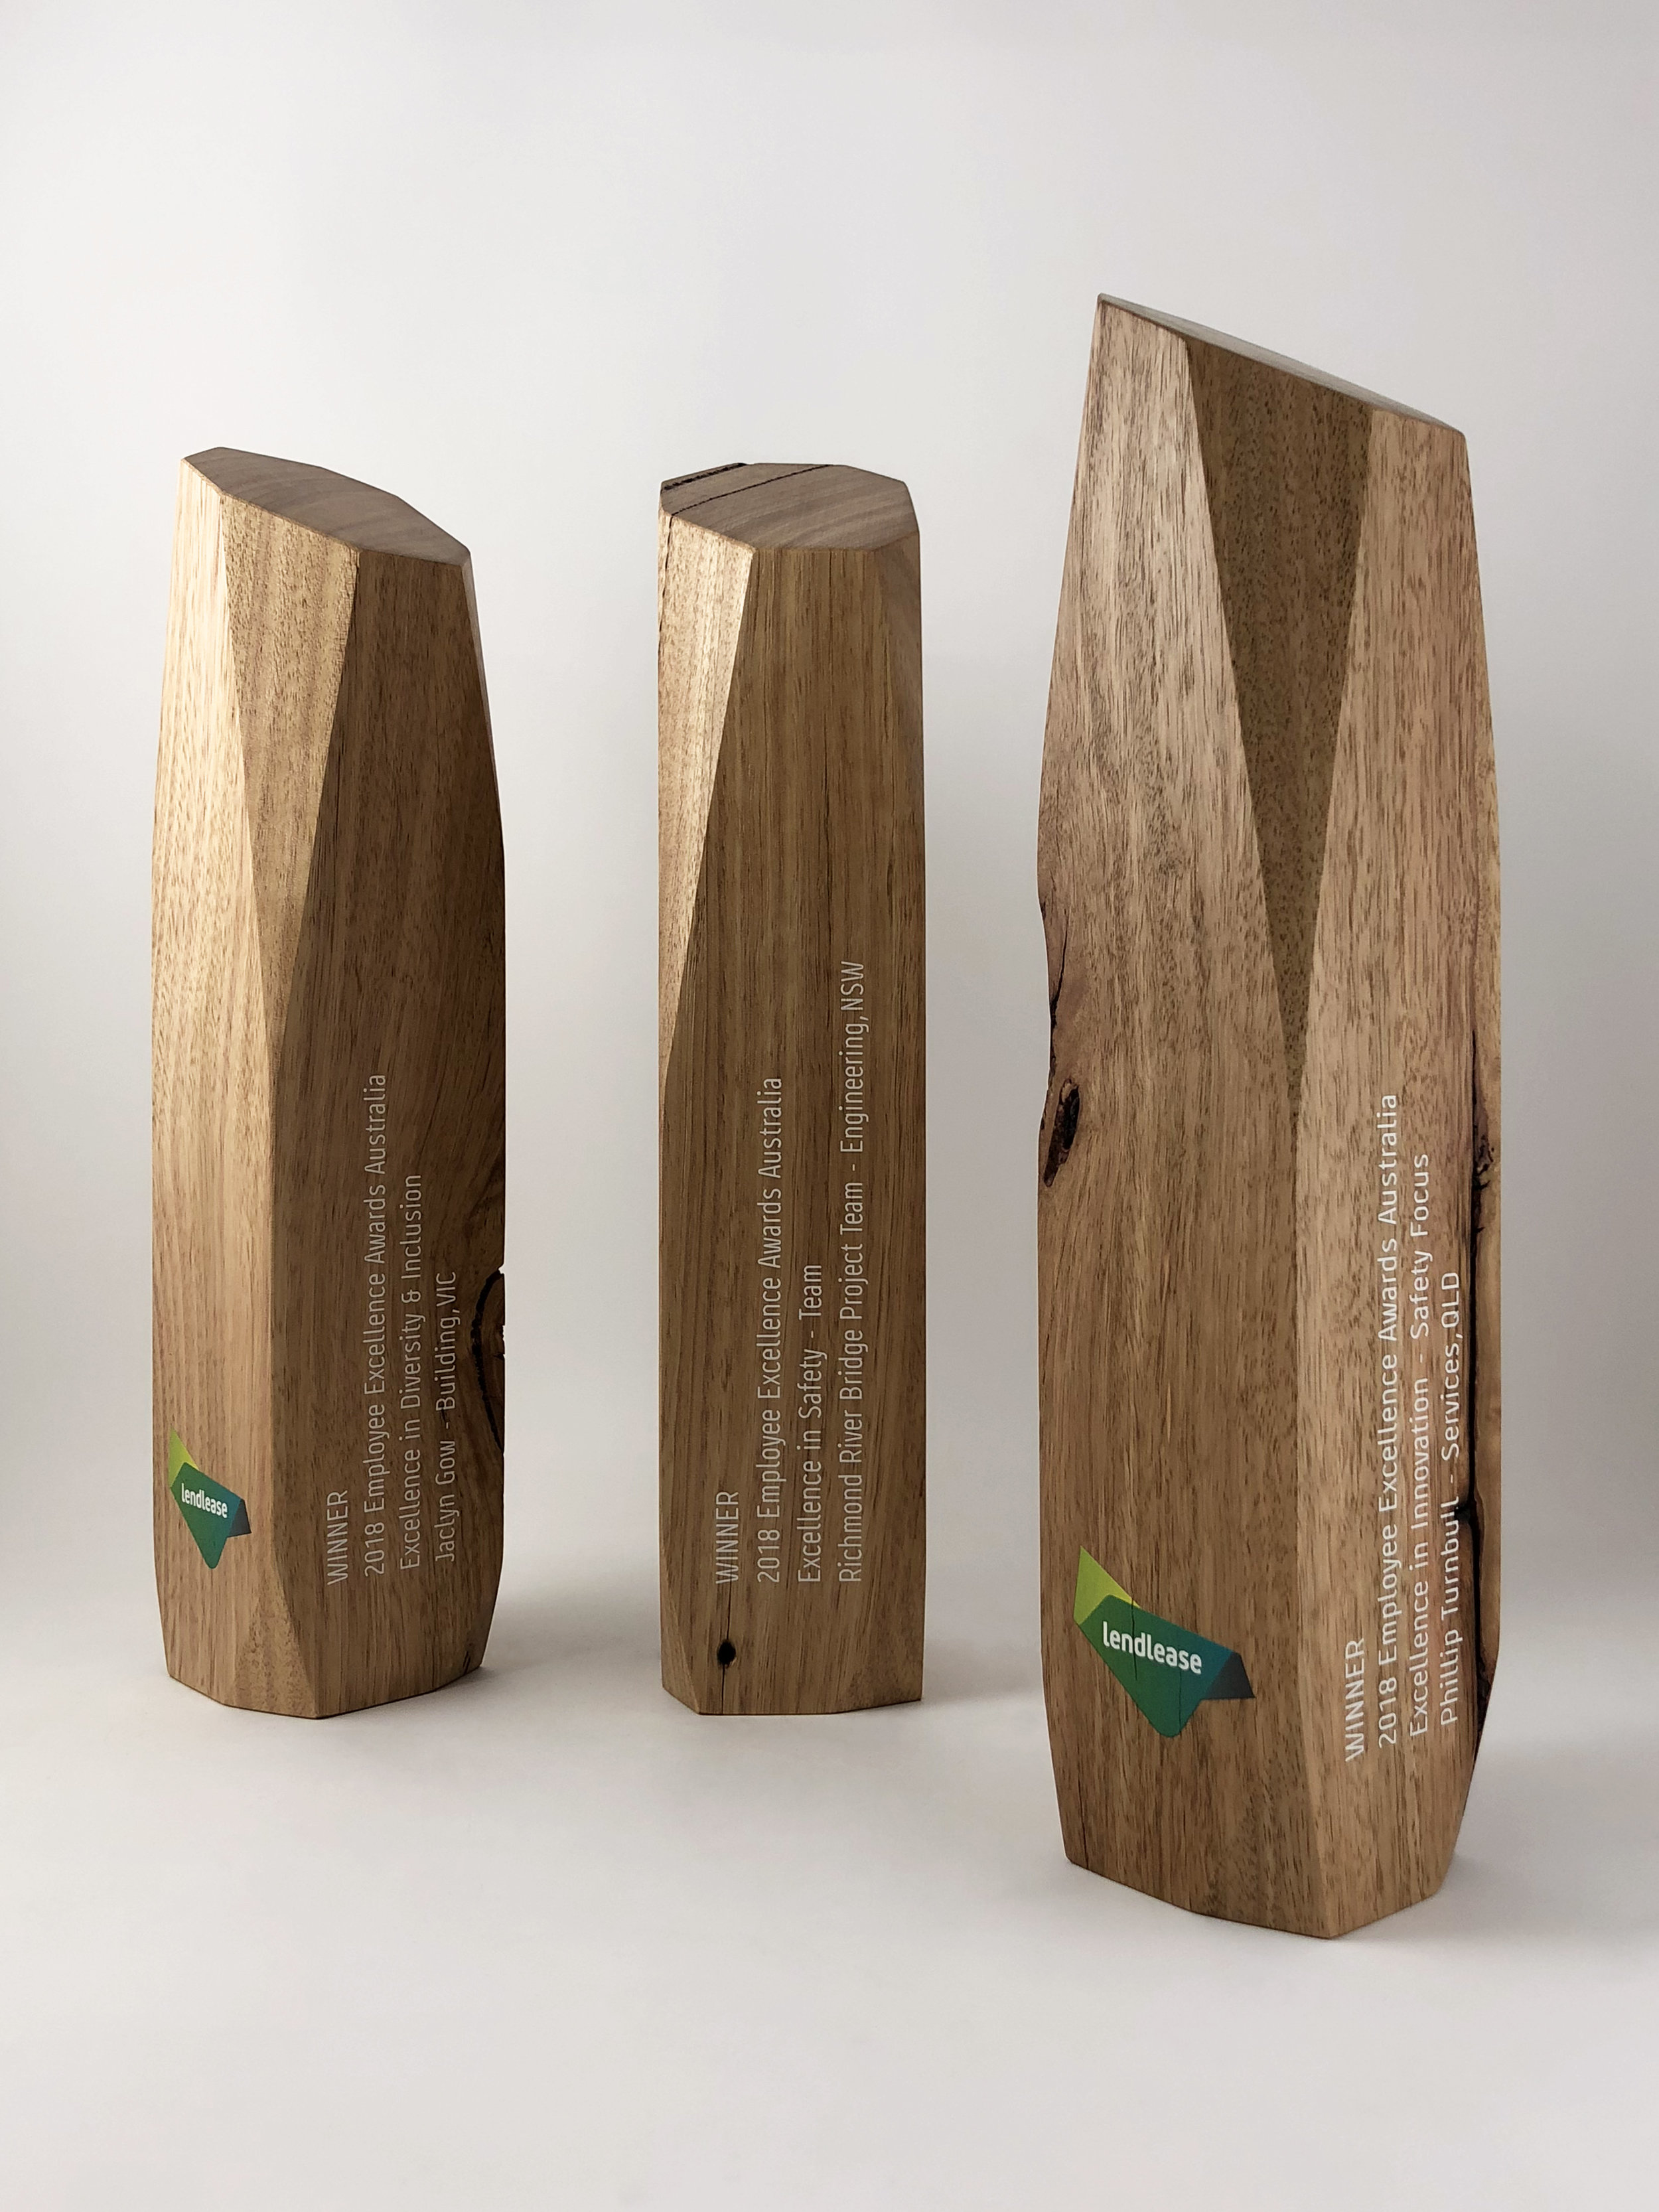 lendlease-reclaimed-timber-awards-trophy-03.jpg